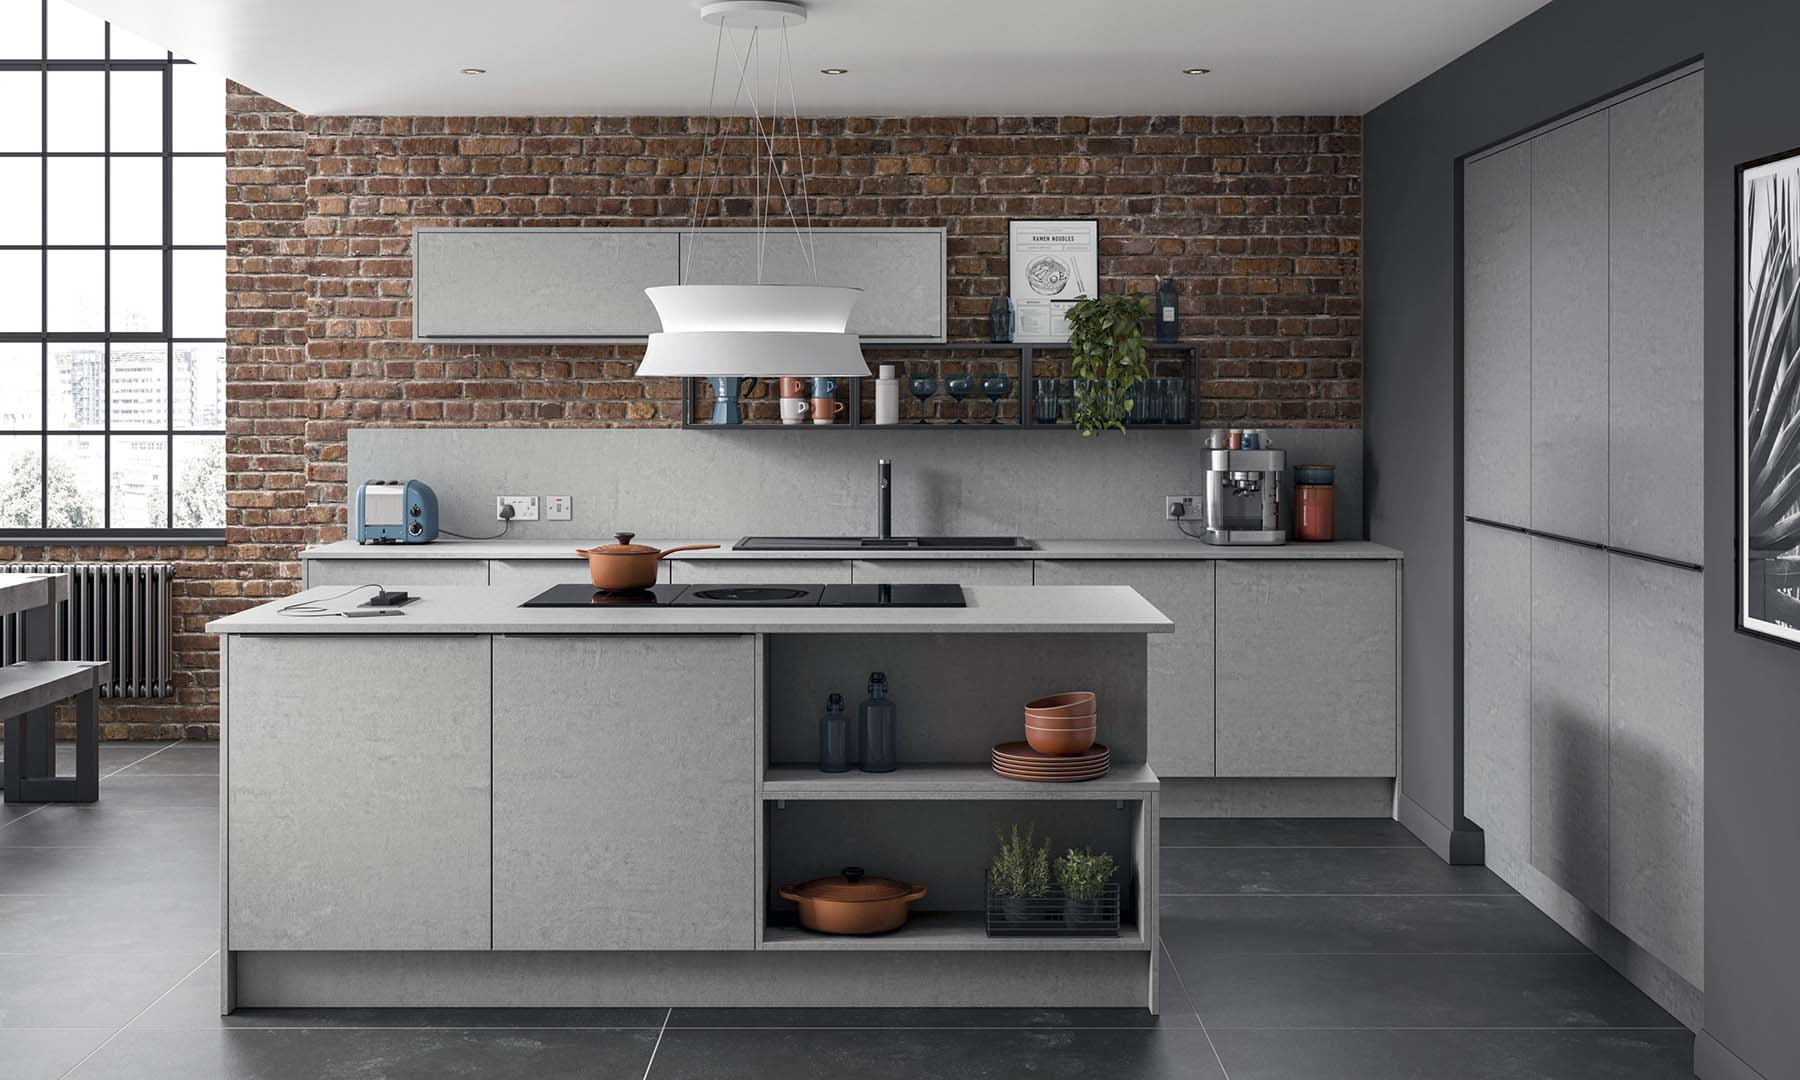 Gray kitchen color scheme with a red brick wall. Modern designed cabinets with flat faces and no hardware.